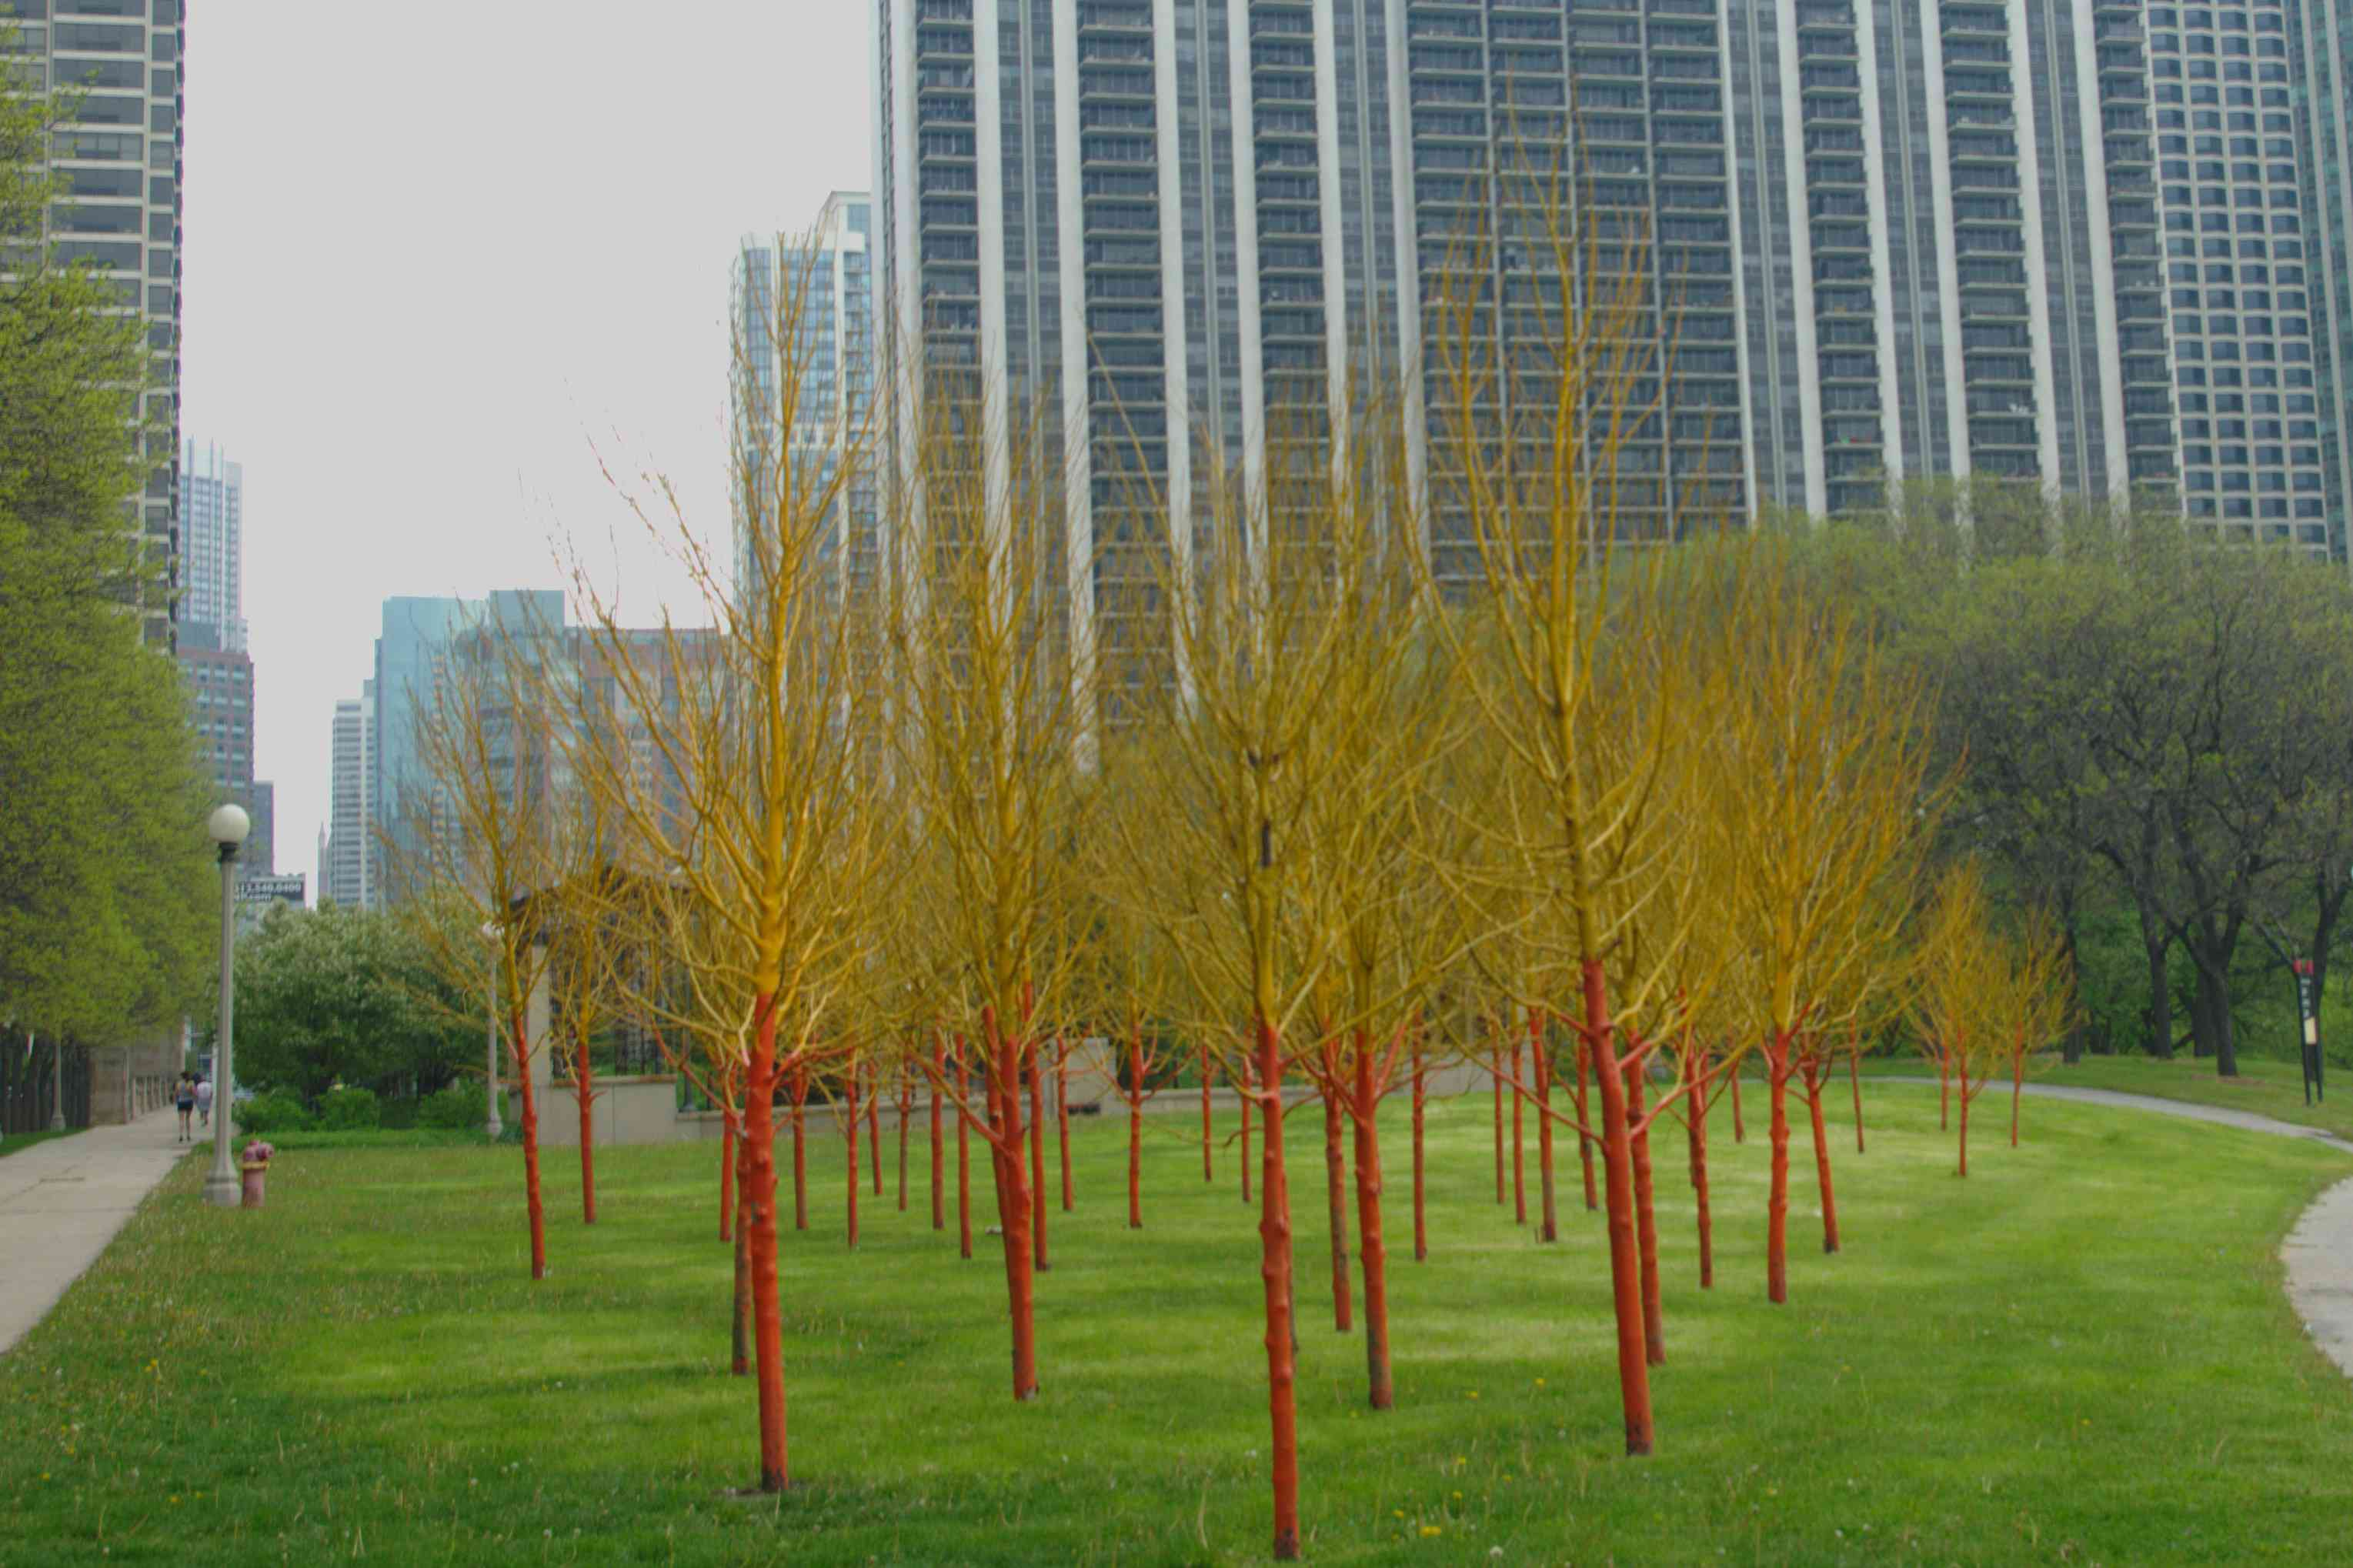 Painted dead trees in a Chicago park